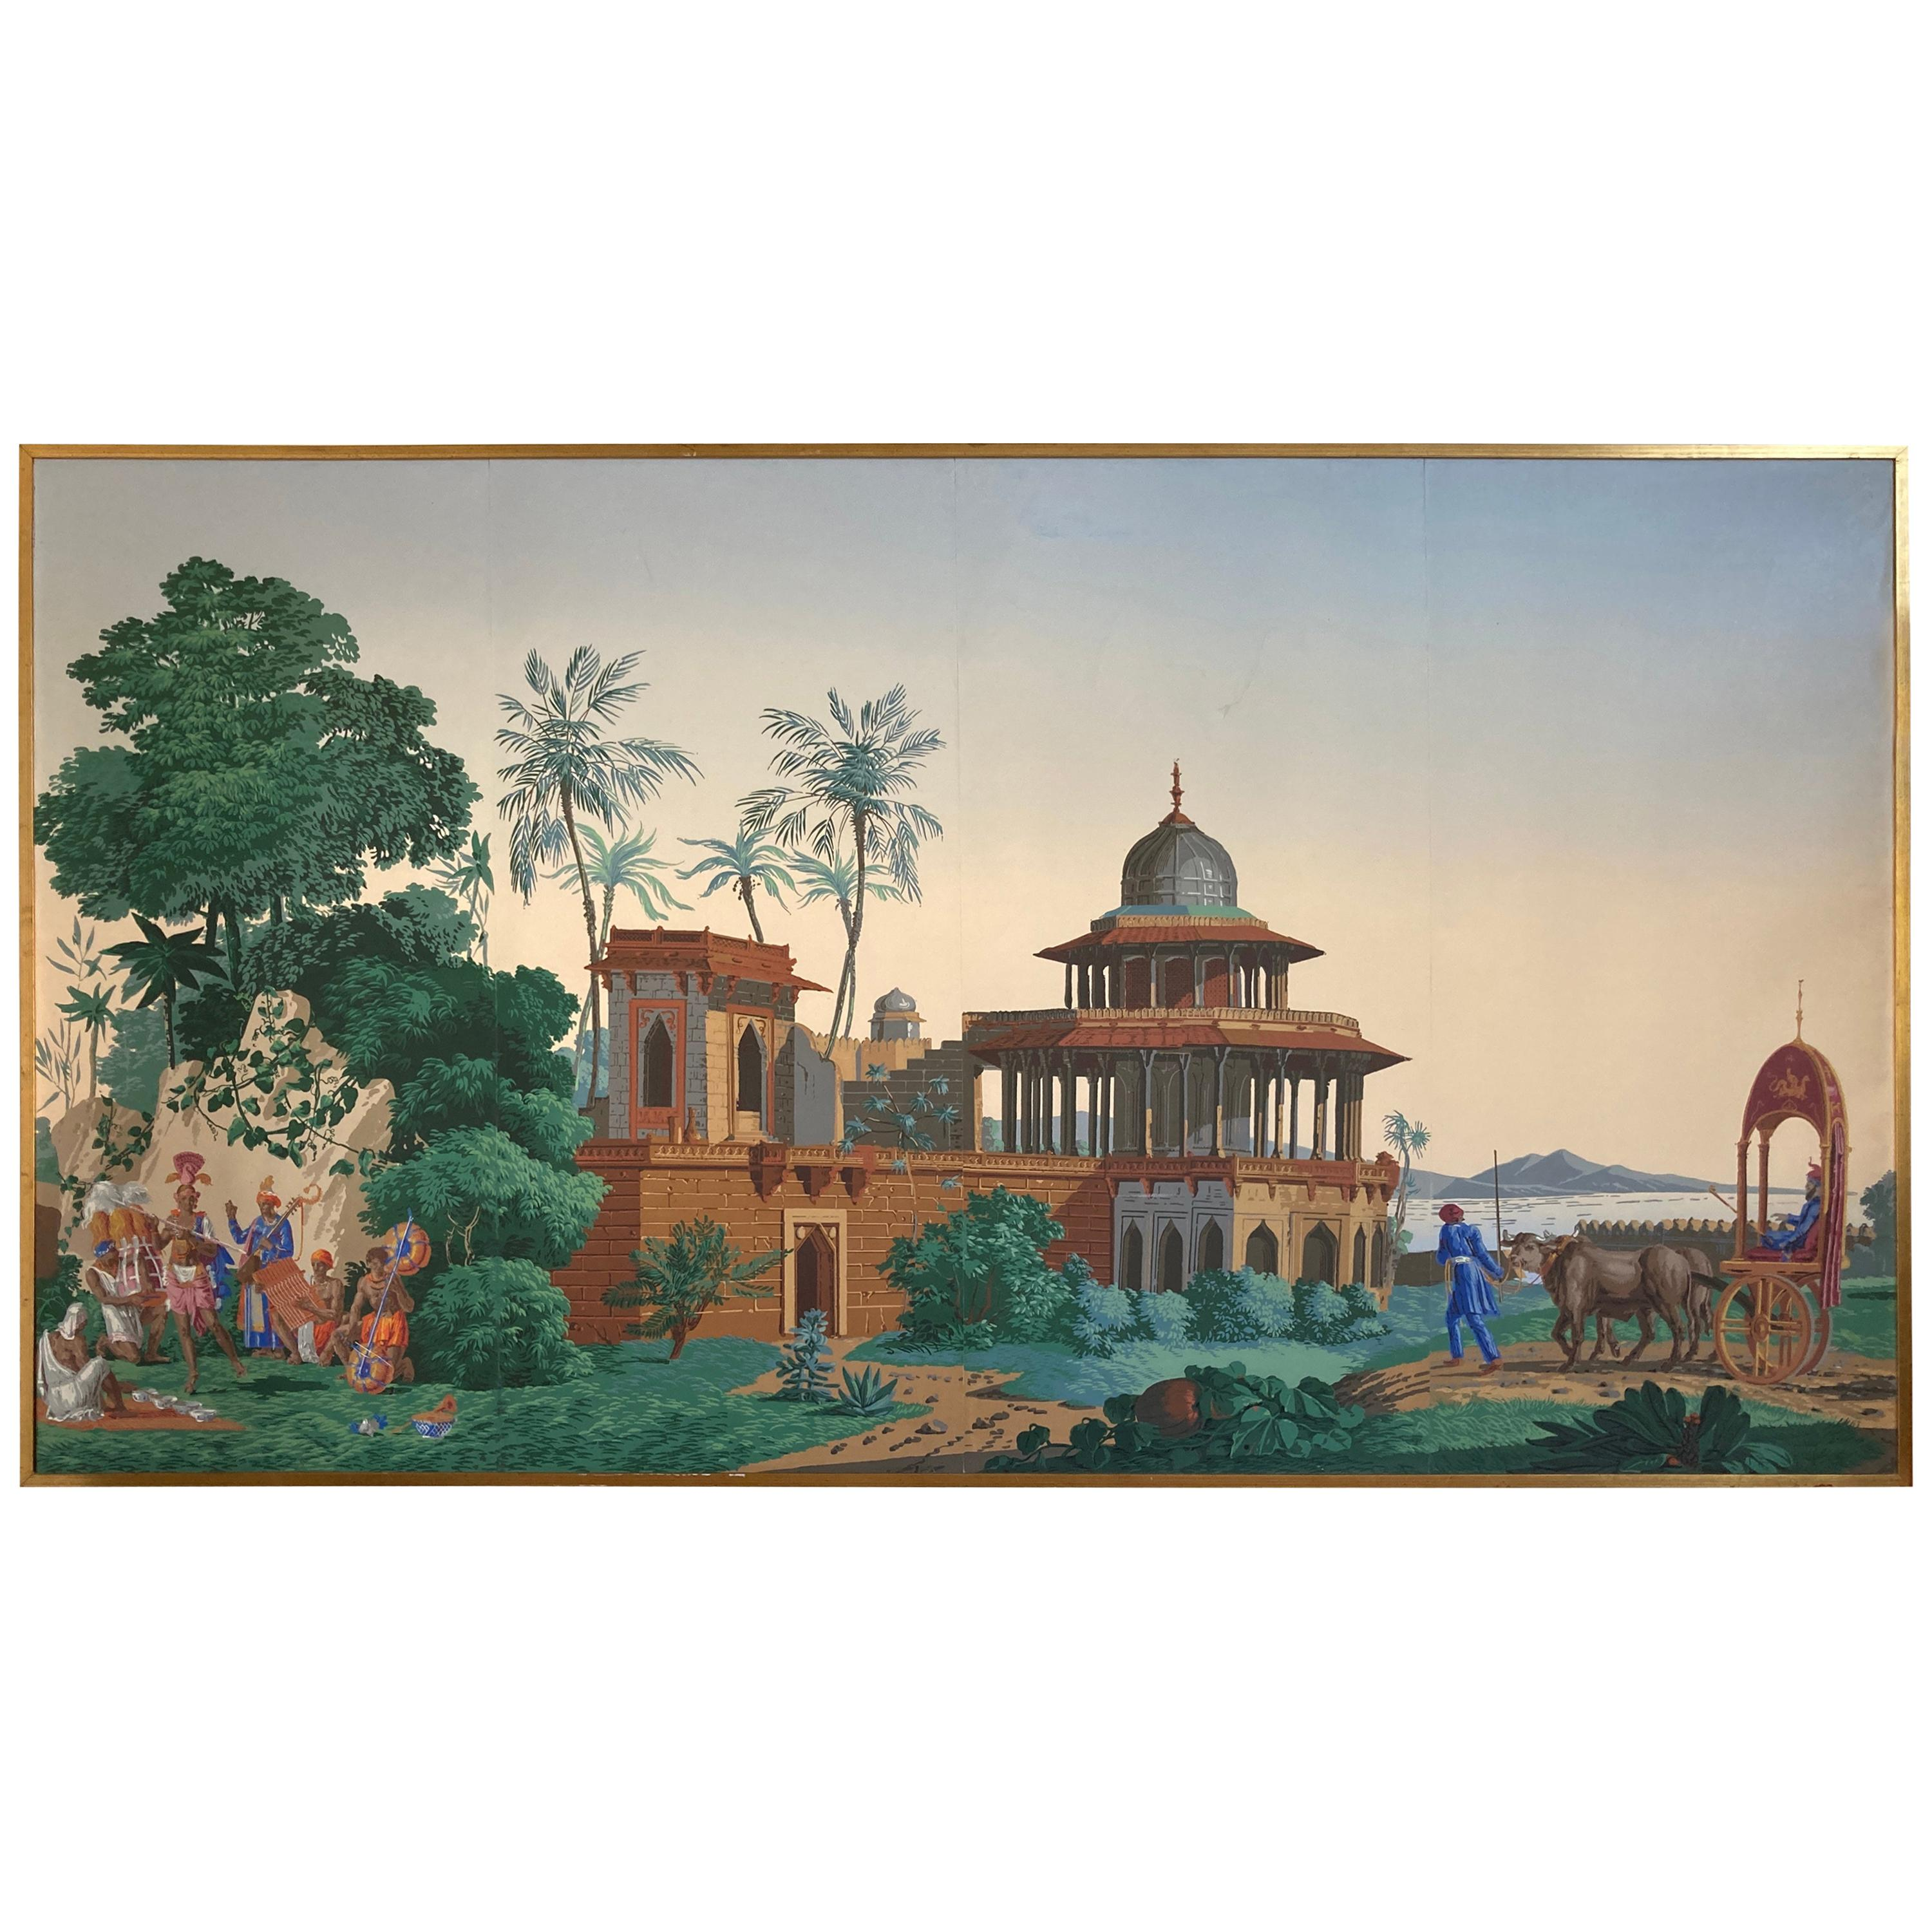 The Hindustan Panoramic Wallpaper Panels by Zuber & Cie. Rixhem, France